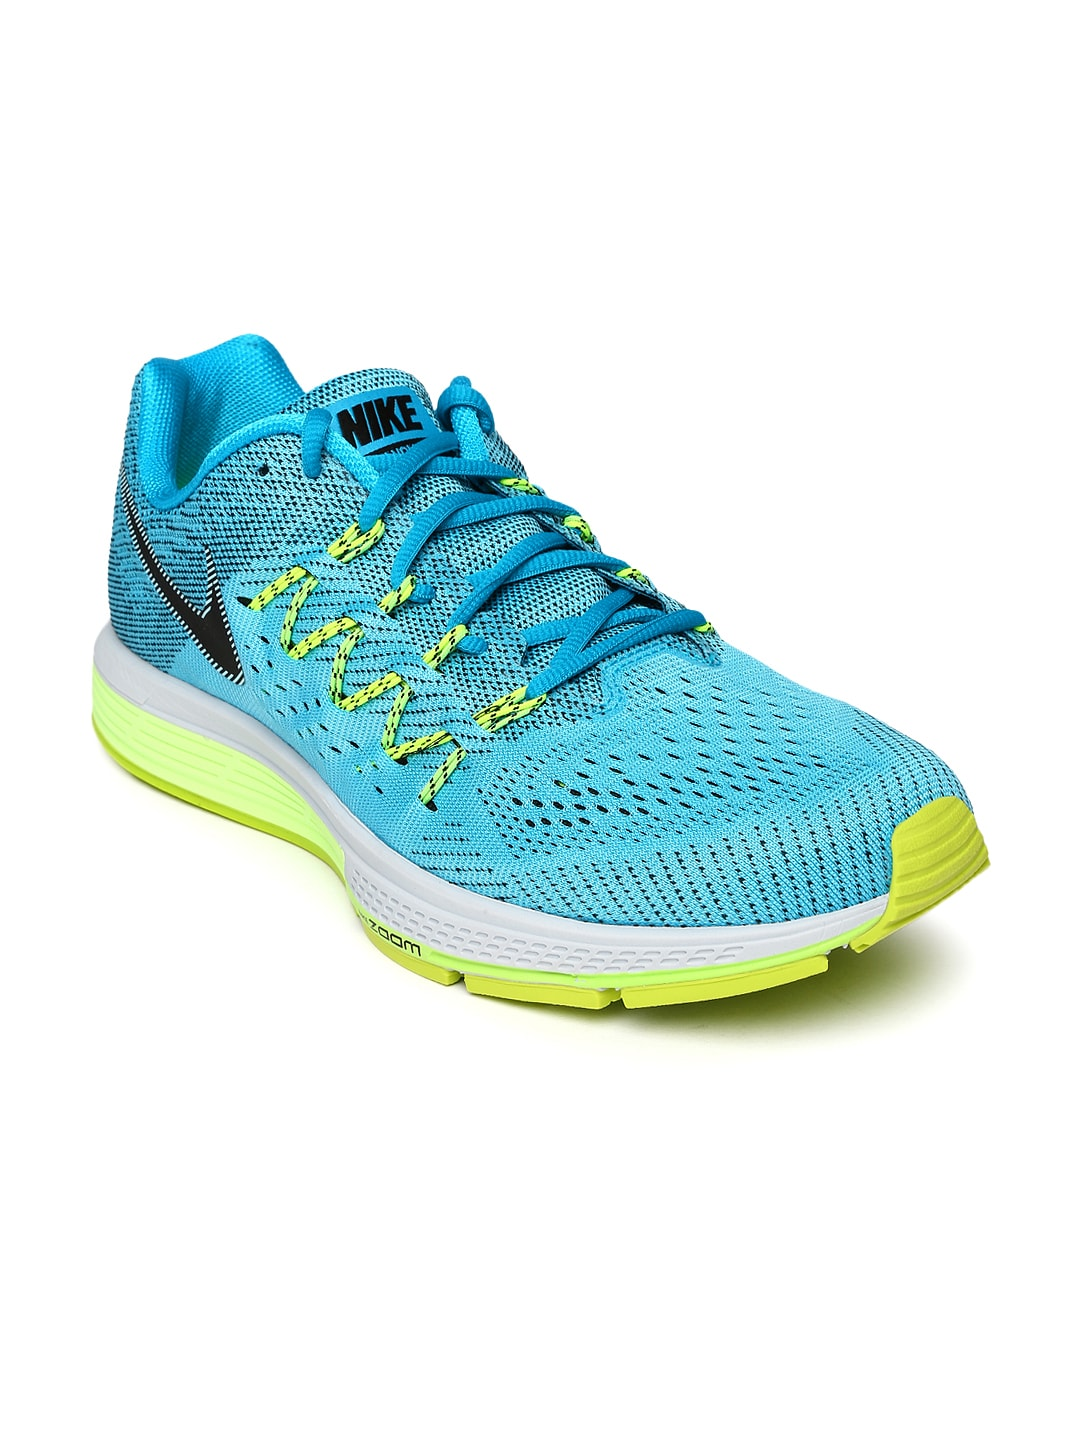 3d8b618f2c5 Nike Men Air Sports Shoes - Buy Nike Men Air Sports Shoes online in India